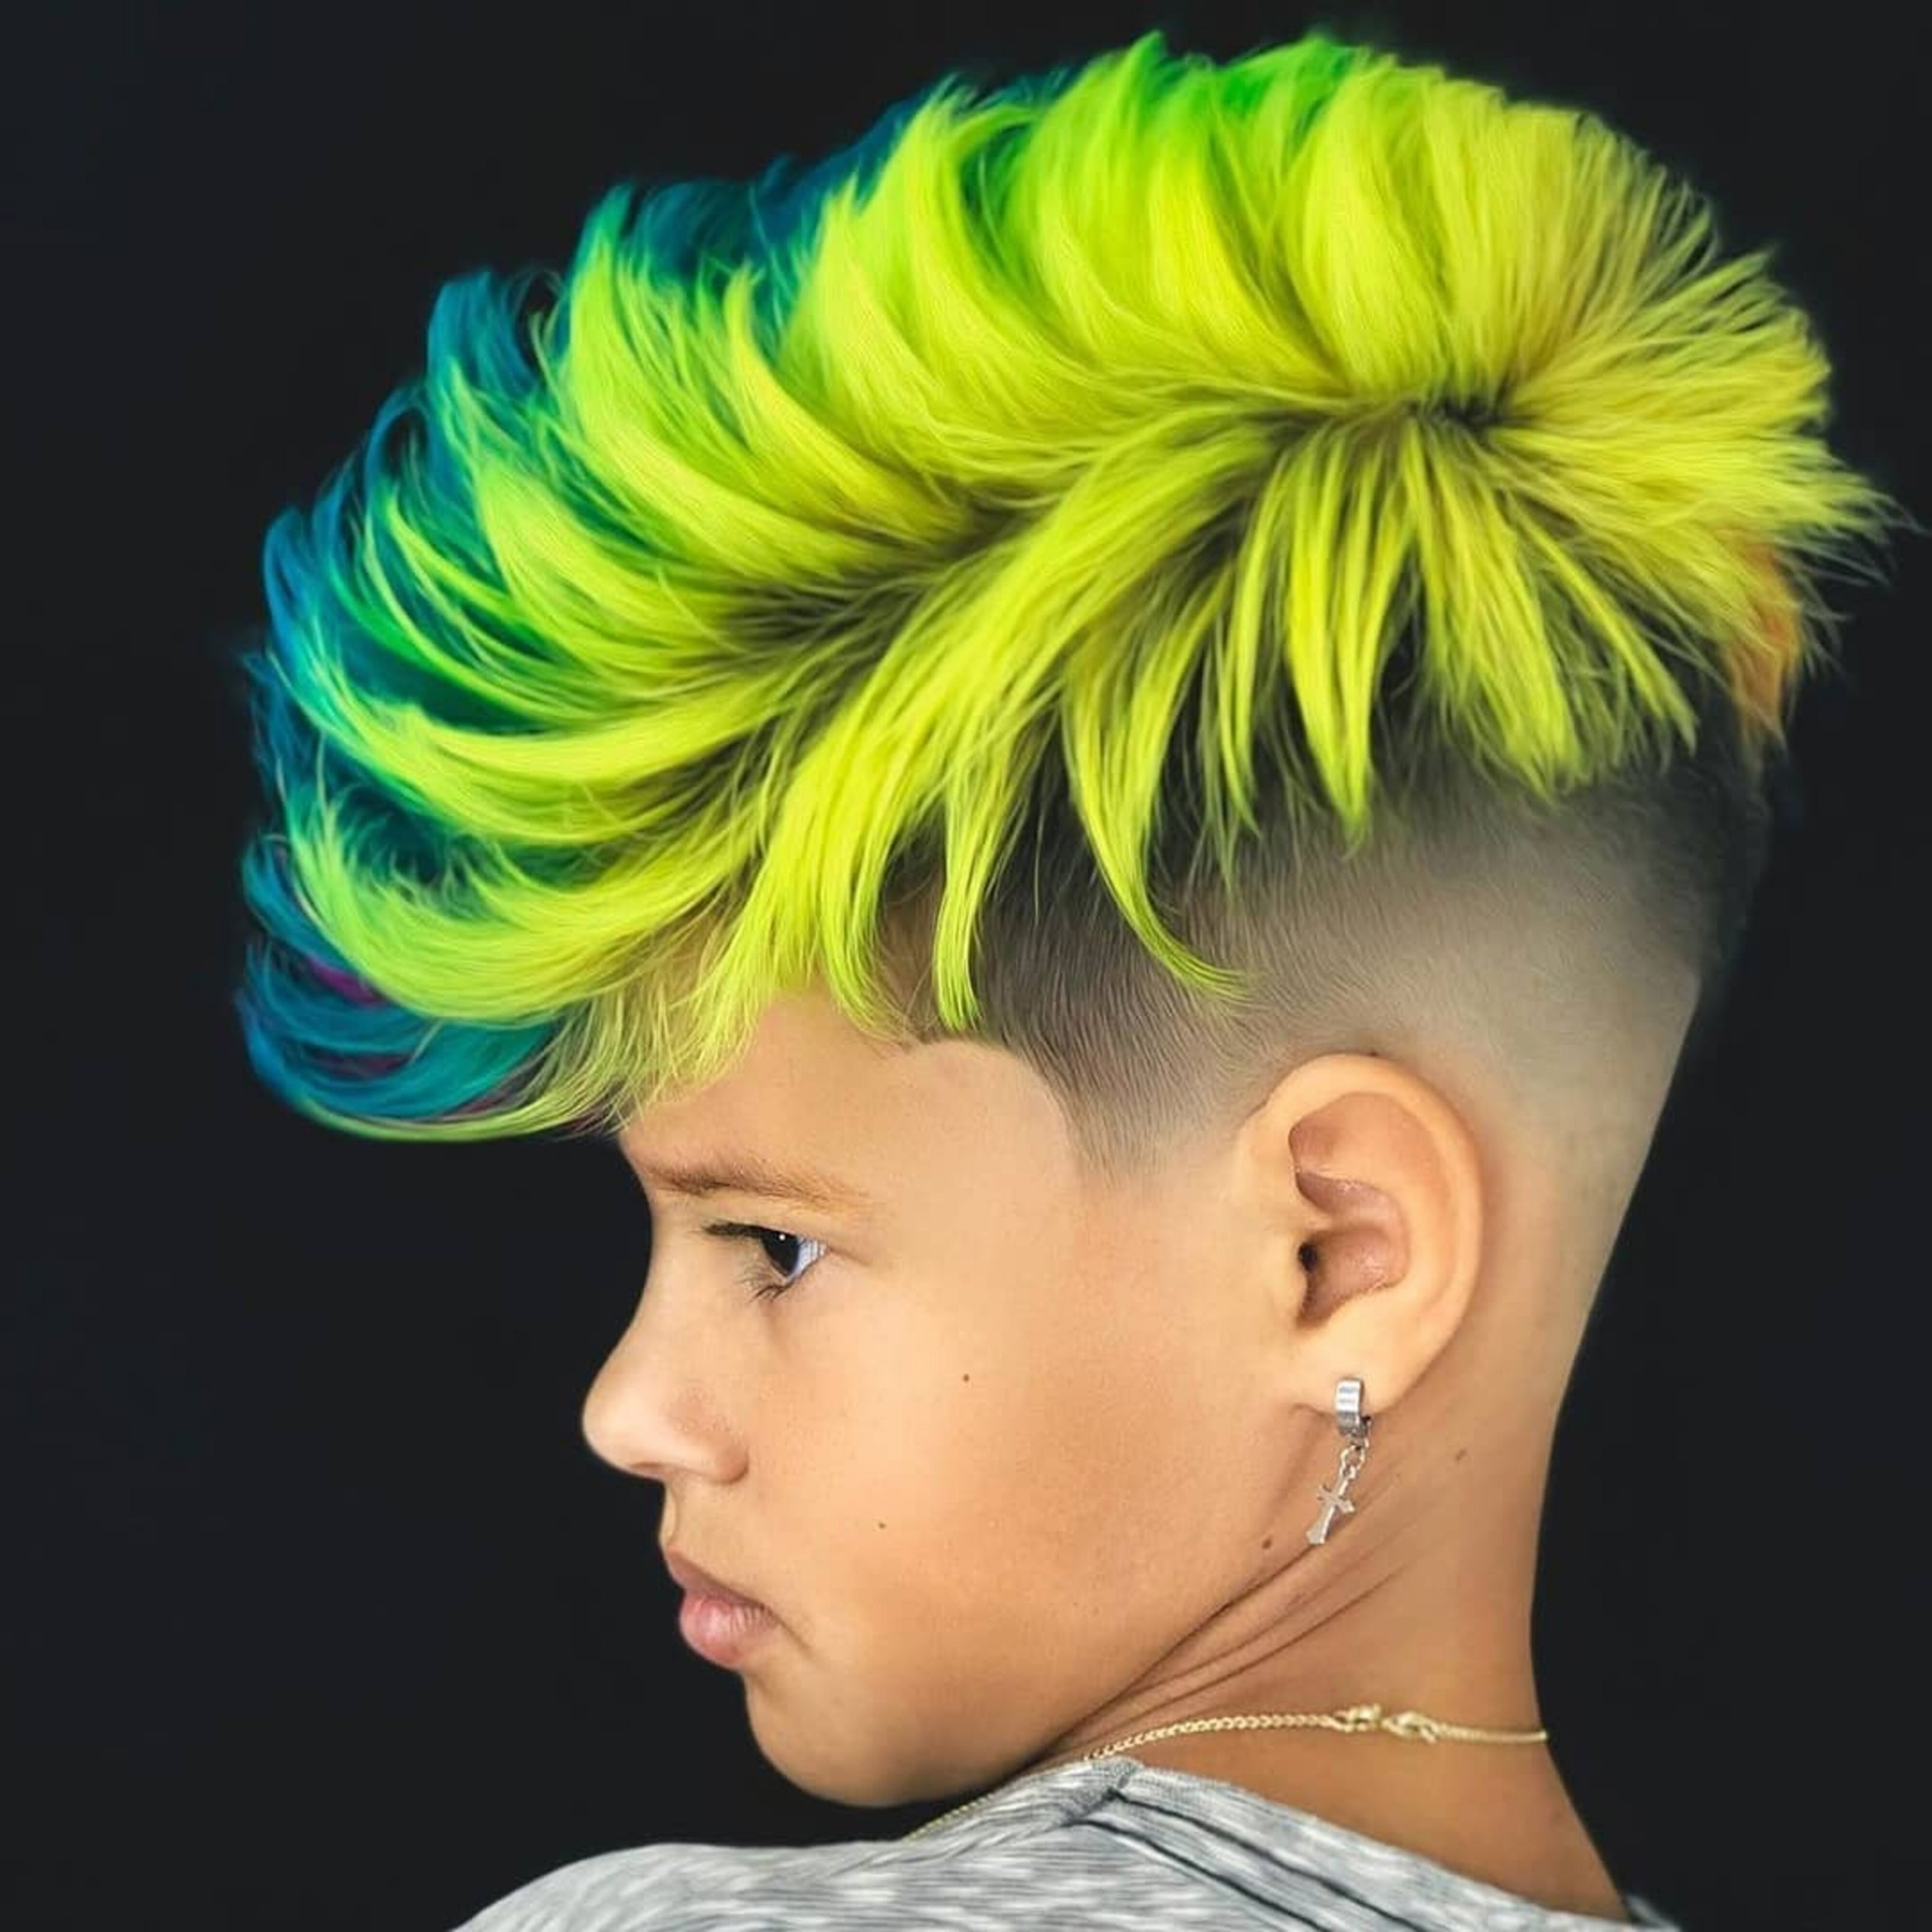 A Faded haircut with a Mohawk for boys.